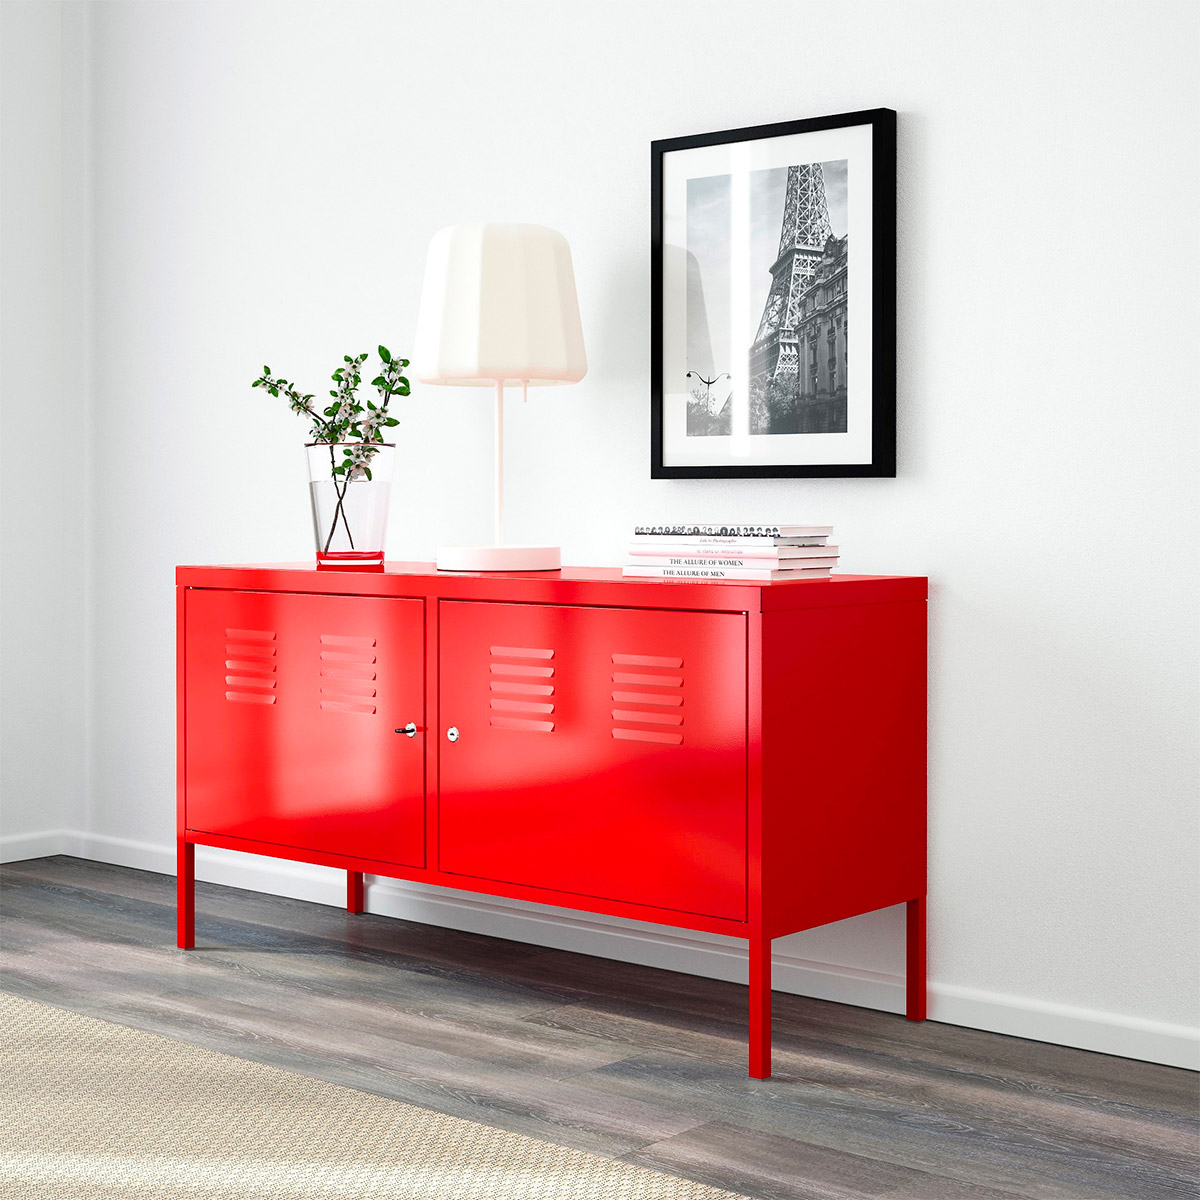 red-entryway-table-ikea-locker-with-keys